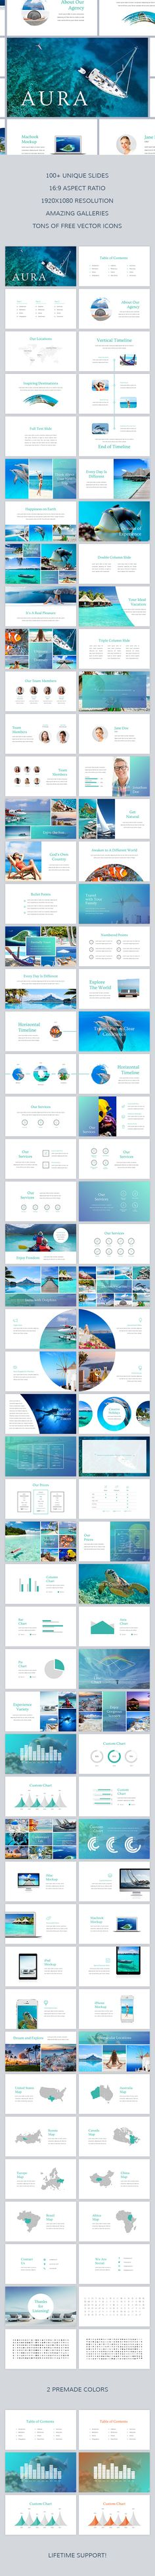 Aura PowerPoint Template (PowerPoint Templates)